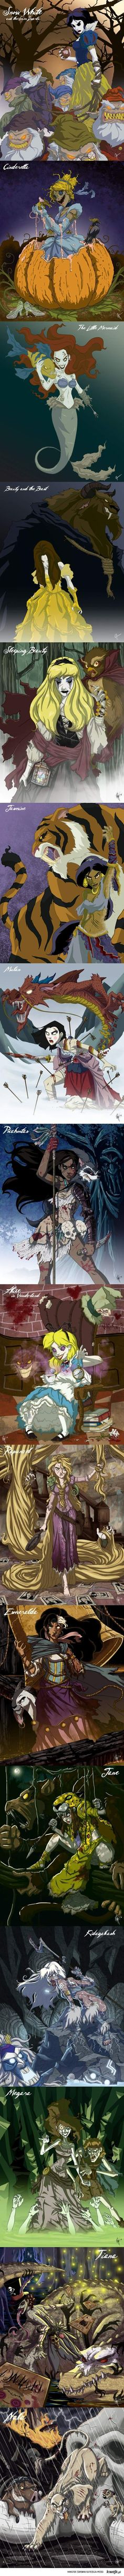 Disney Princesses Zombie style! awesome